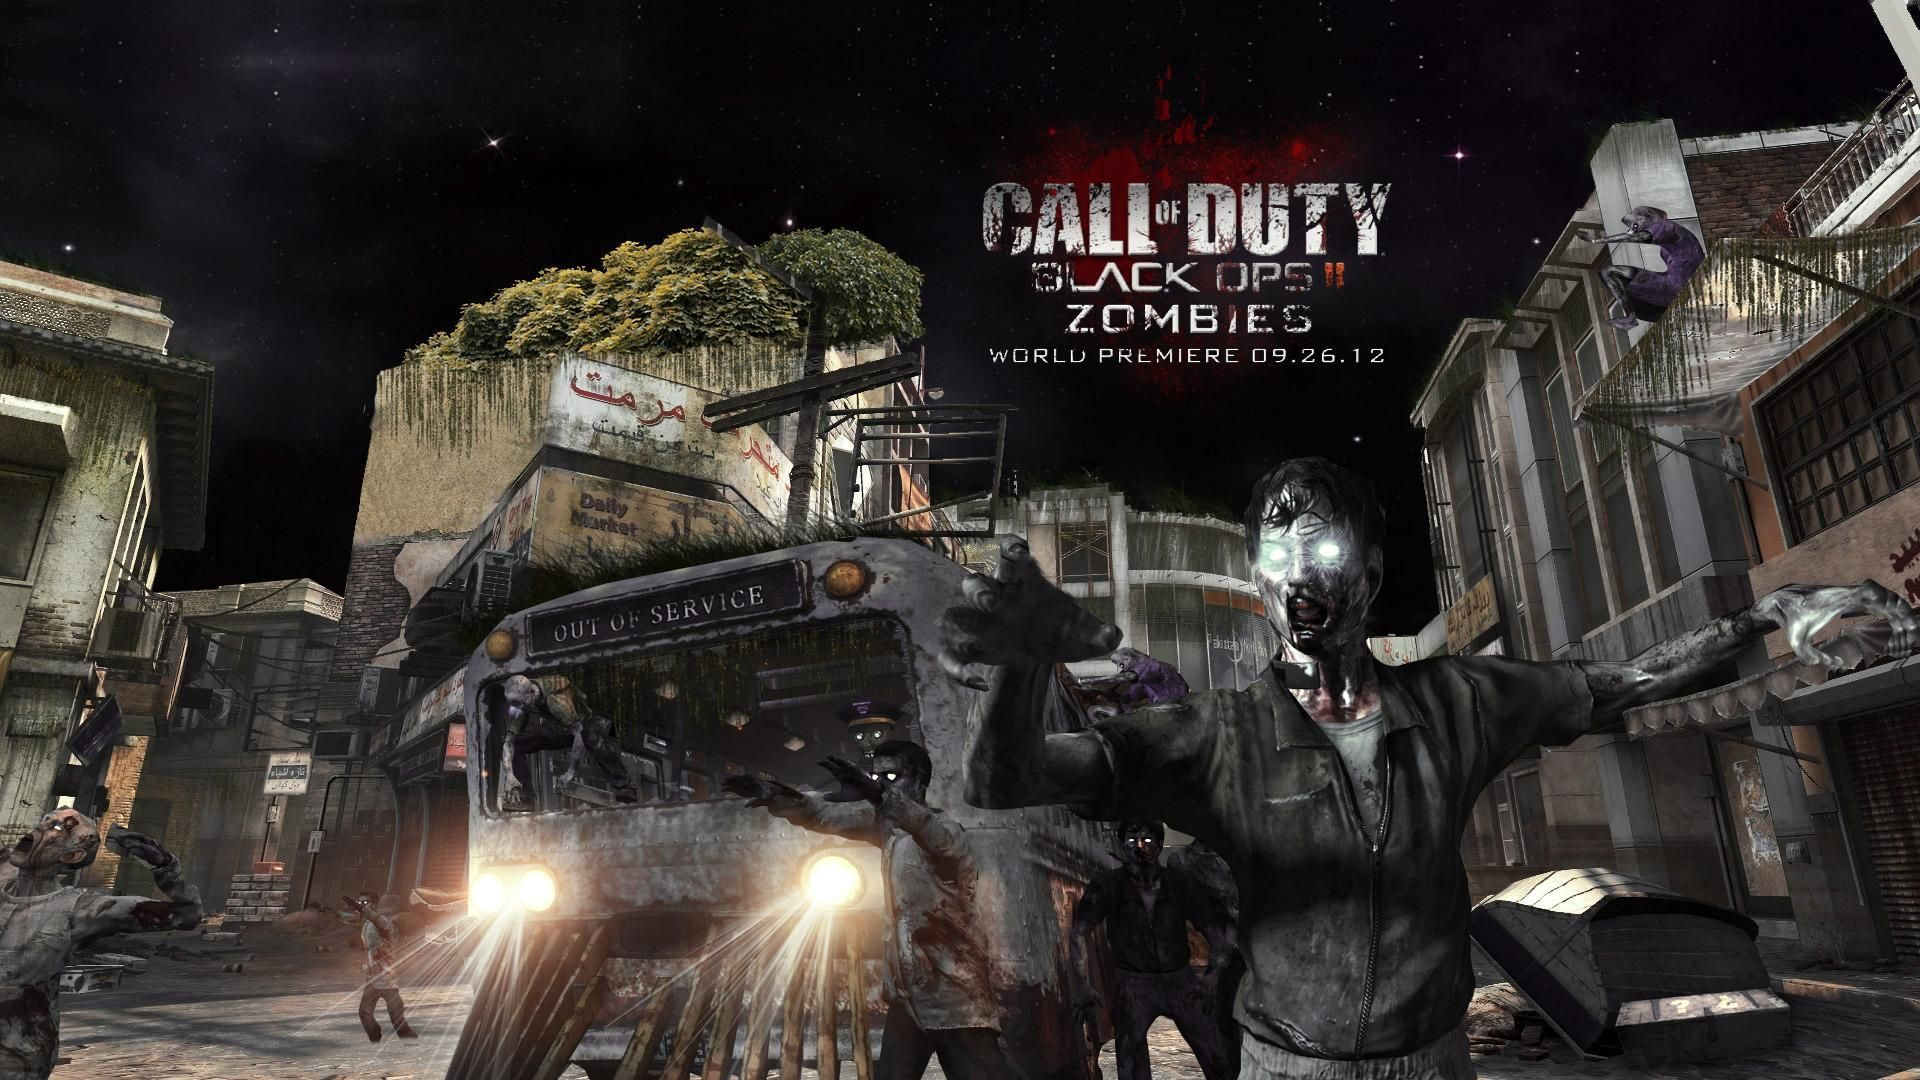 Ww2 Zombies Wallpaper Posted By Sarah Johnson